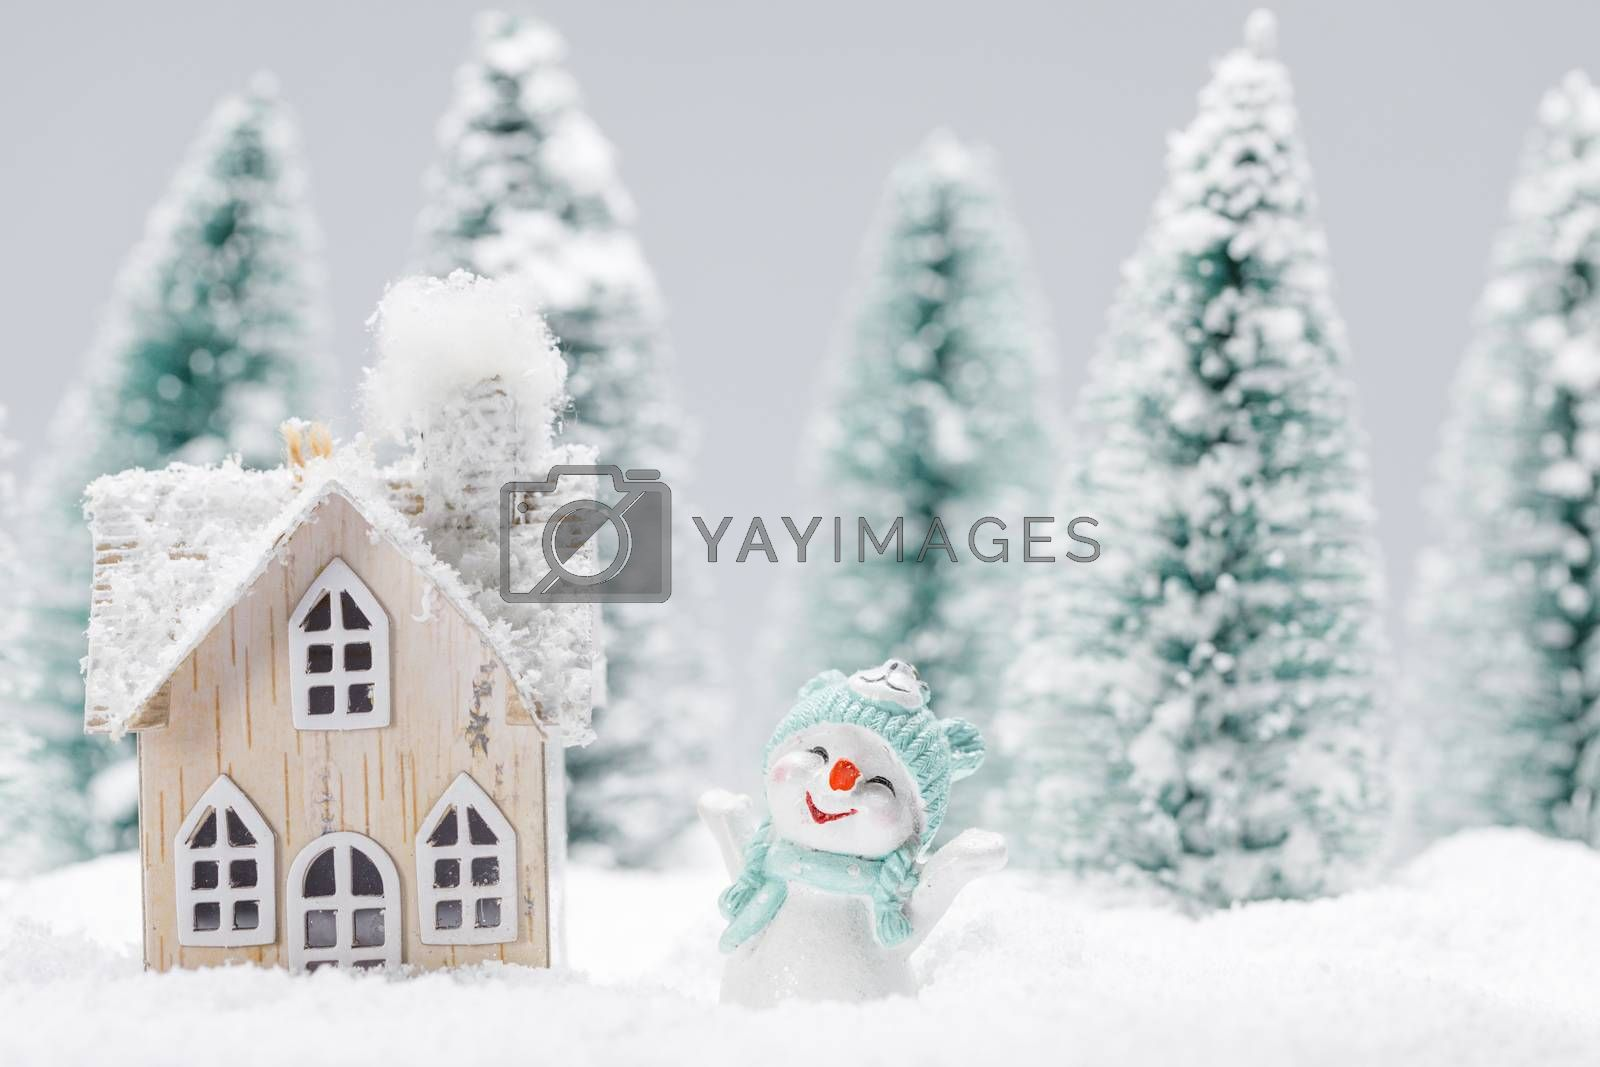 Small decorative snowman with gift near wooden house in fir forest under falling snow